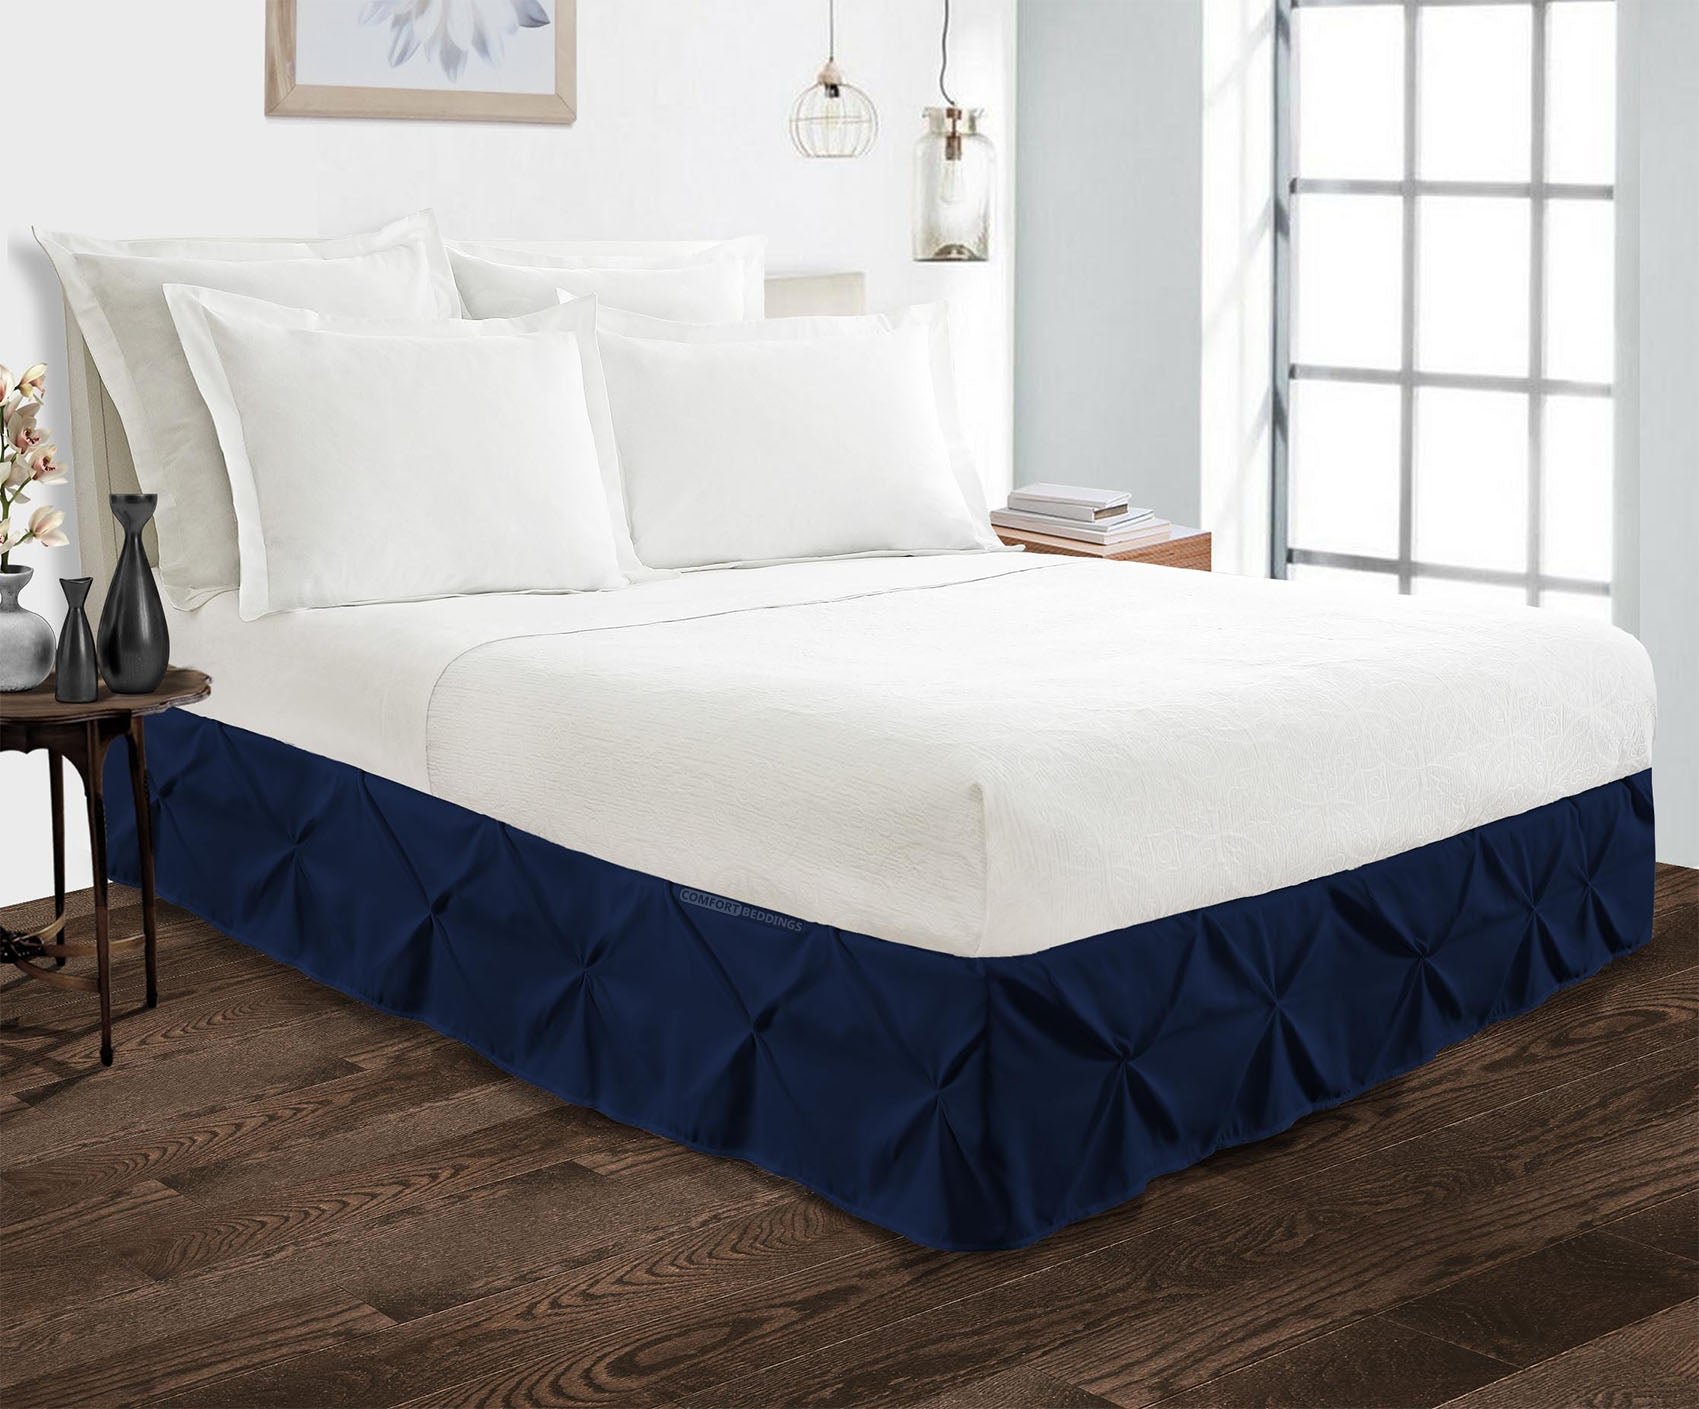 Imperial luxury navy blue pinch pleated bed skirt